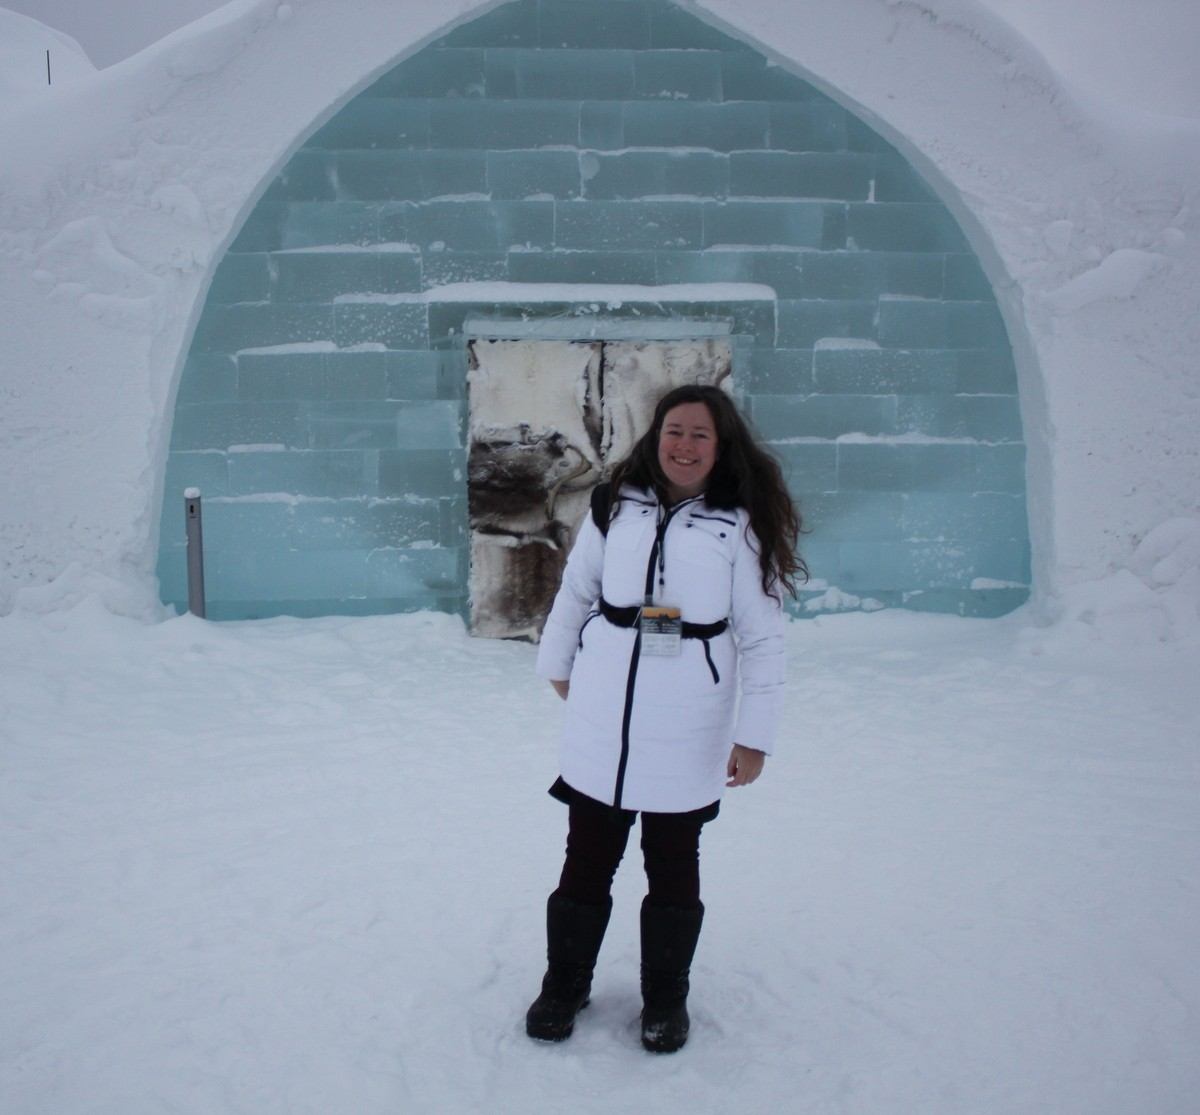 Looking sketchy and cold outside the Ice Hotel. Just before I got my snowsuit and snowboots - no cold can get me now!